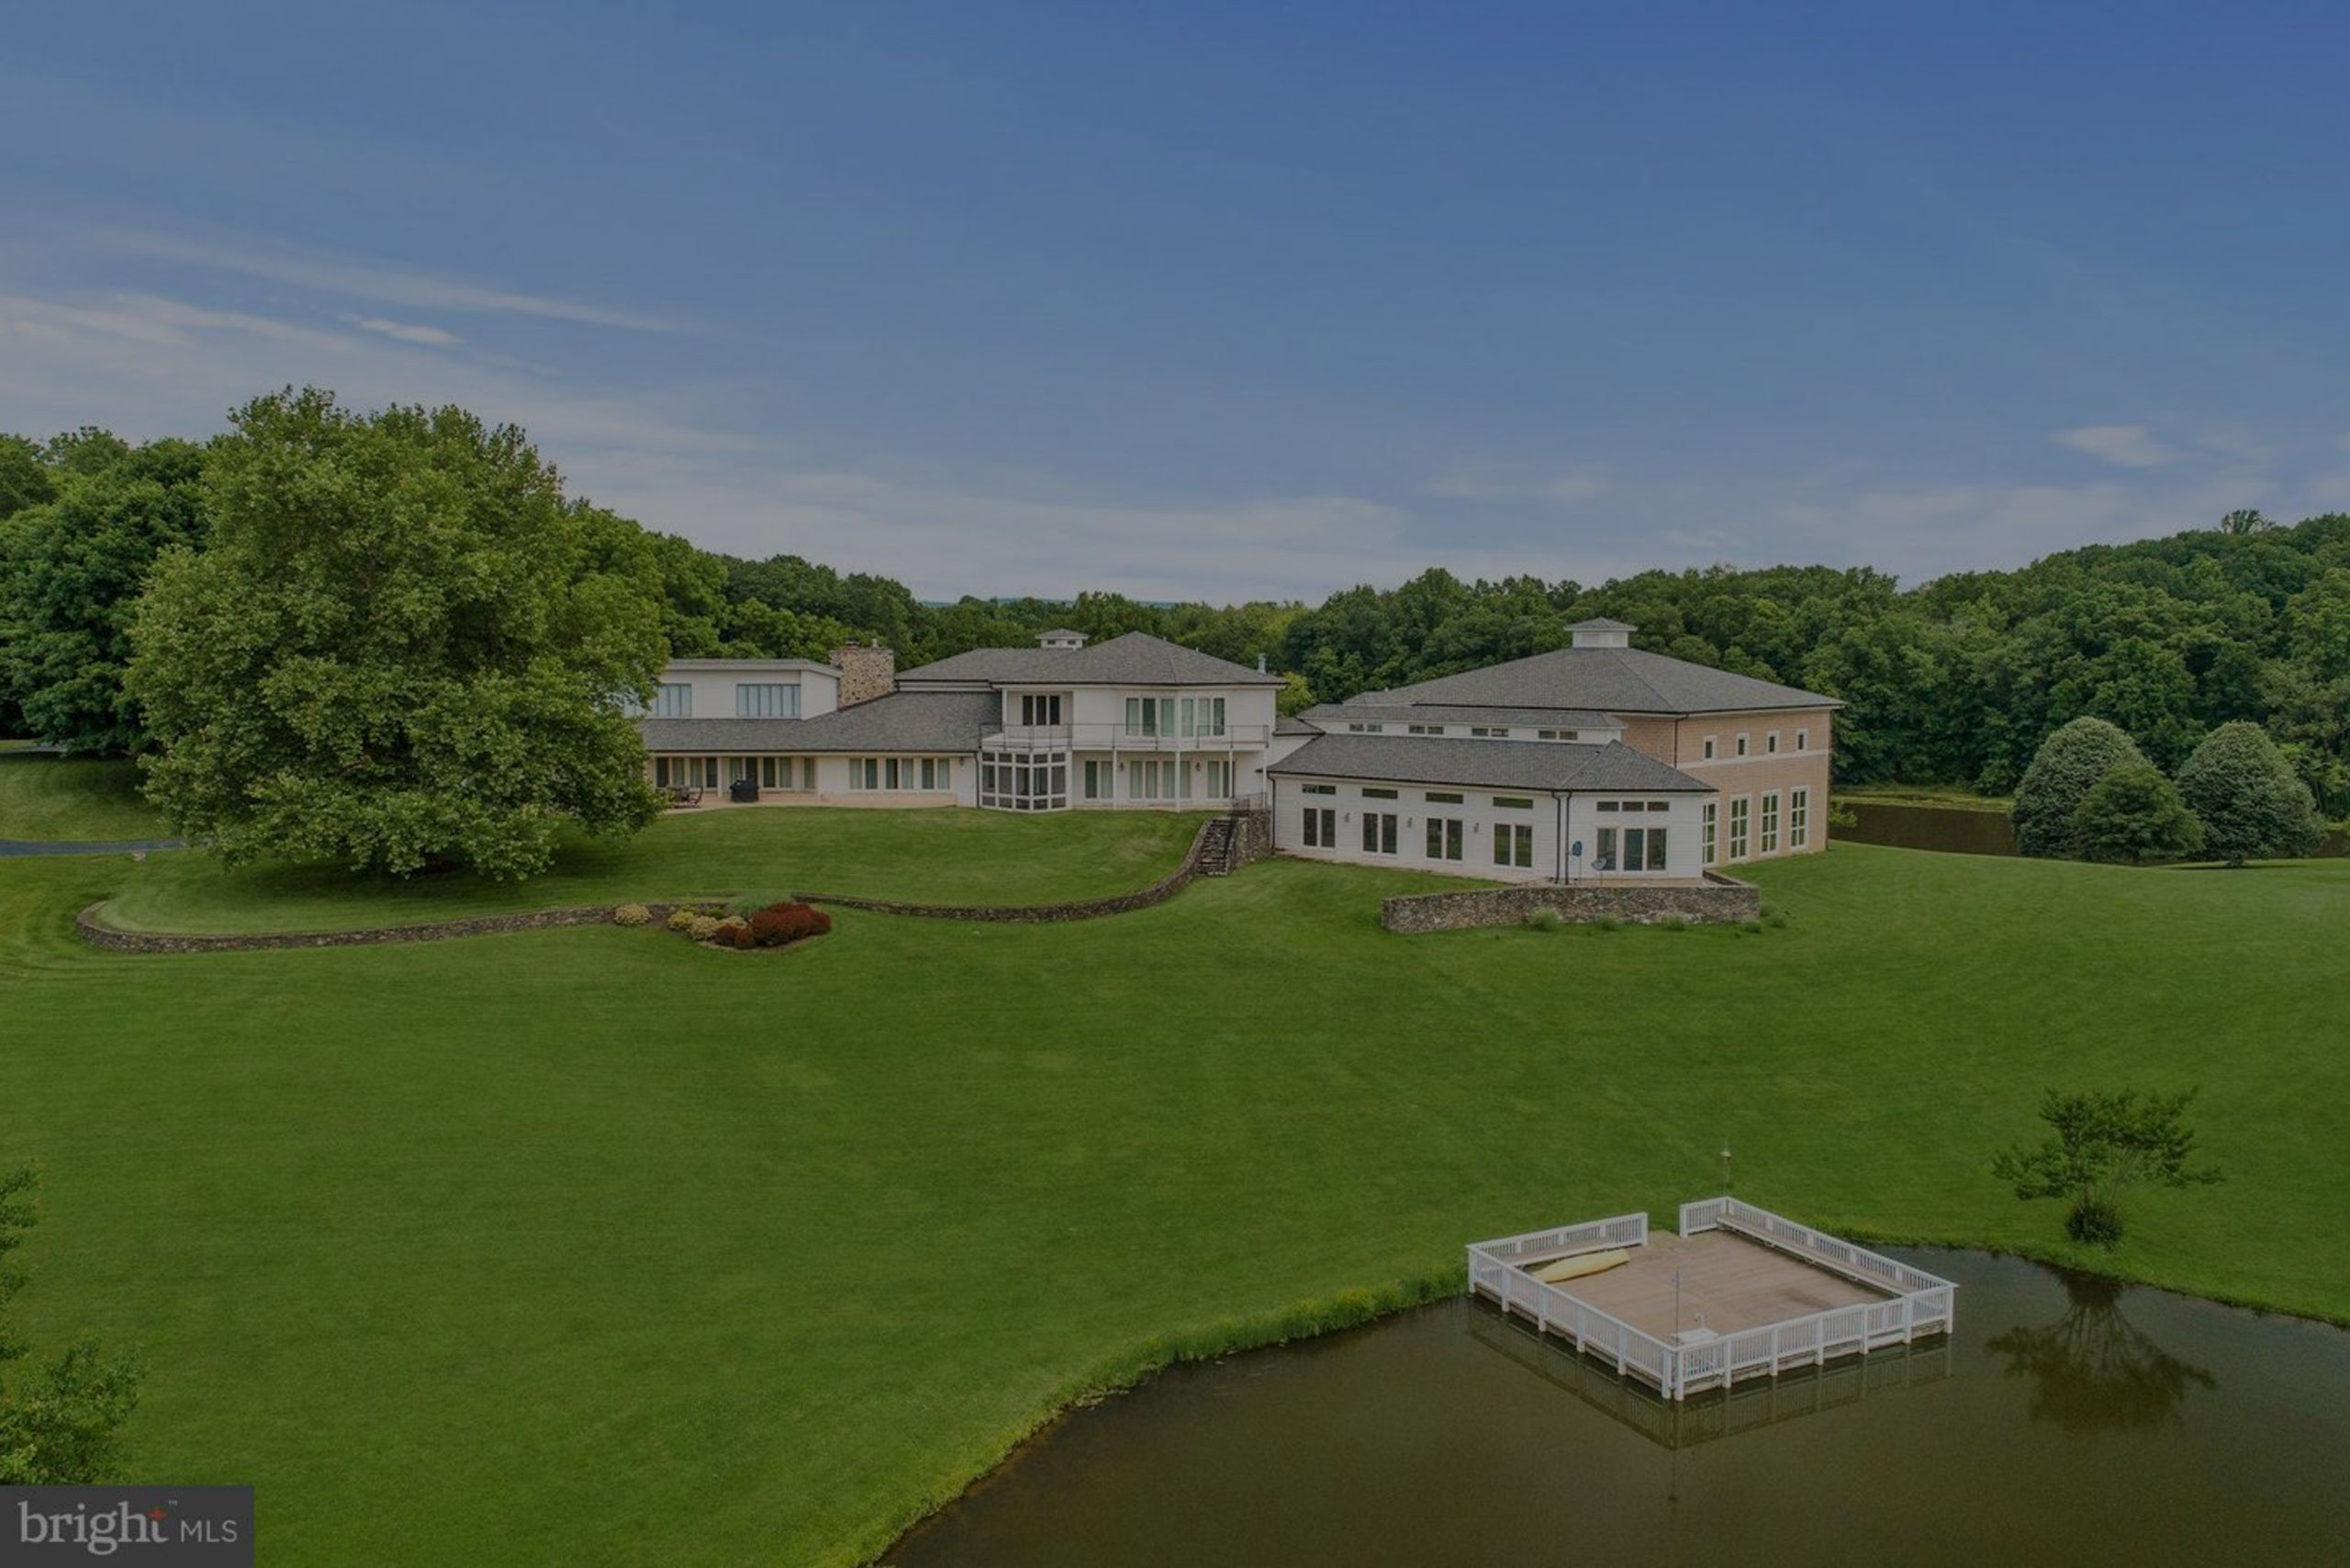 Featured | 23,000 SQFT Purcellville Entertainer's Paradise For Sale